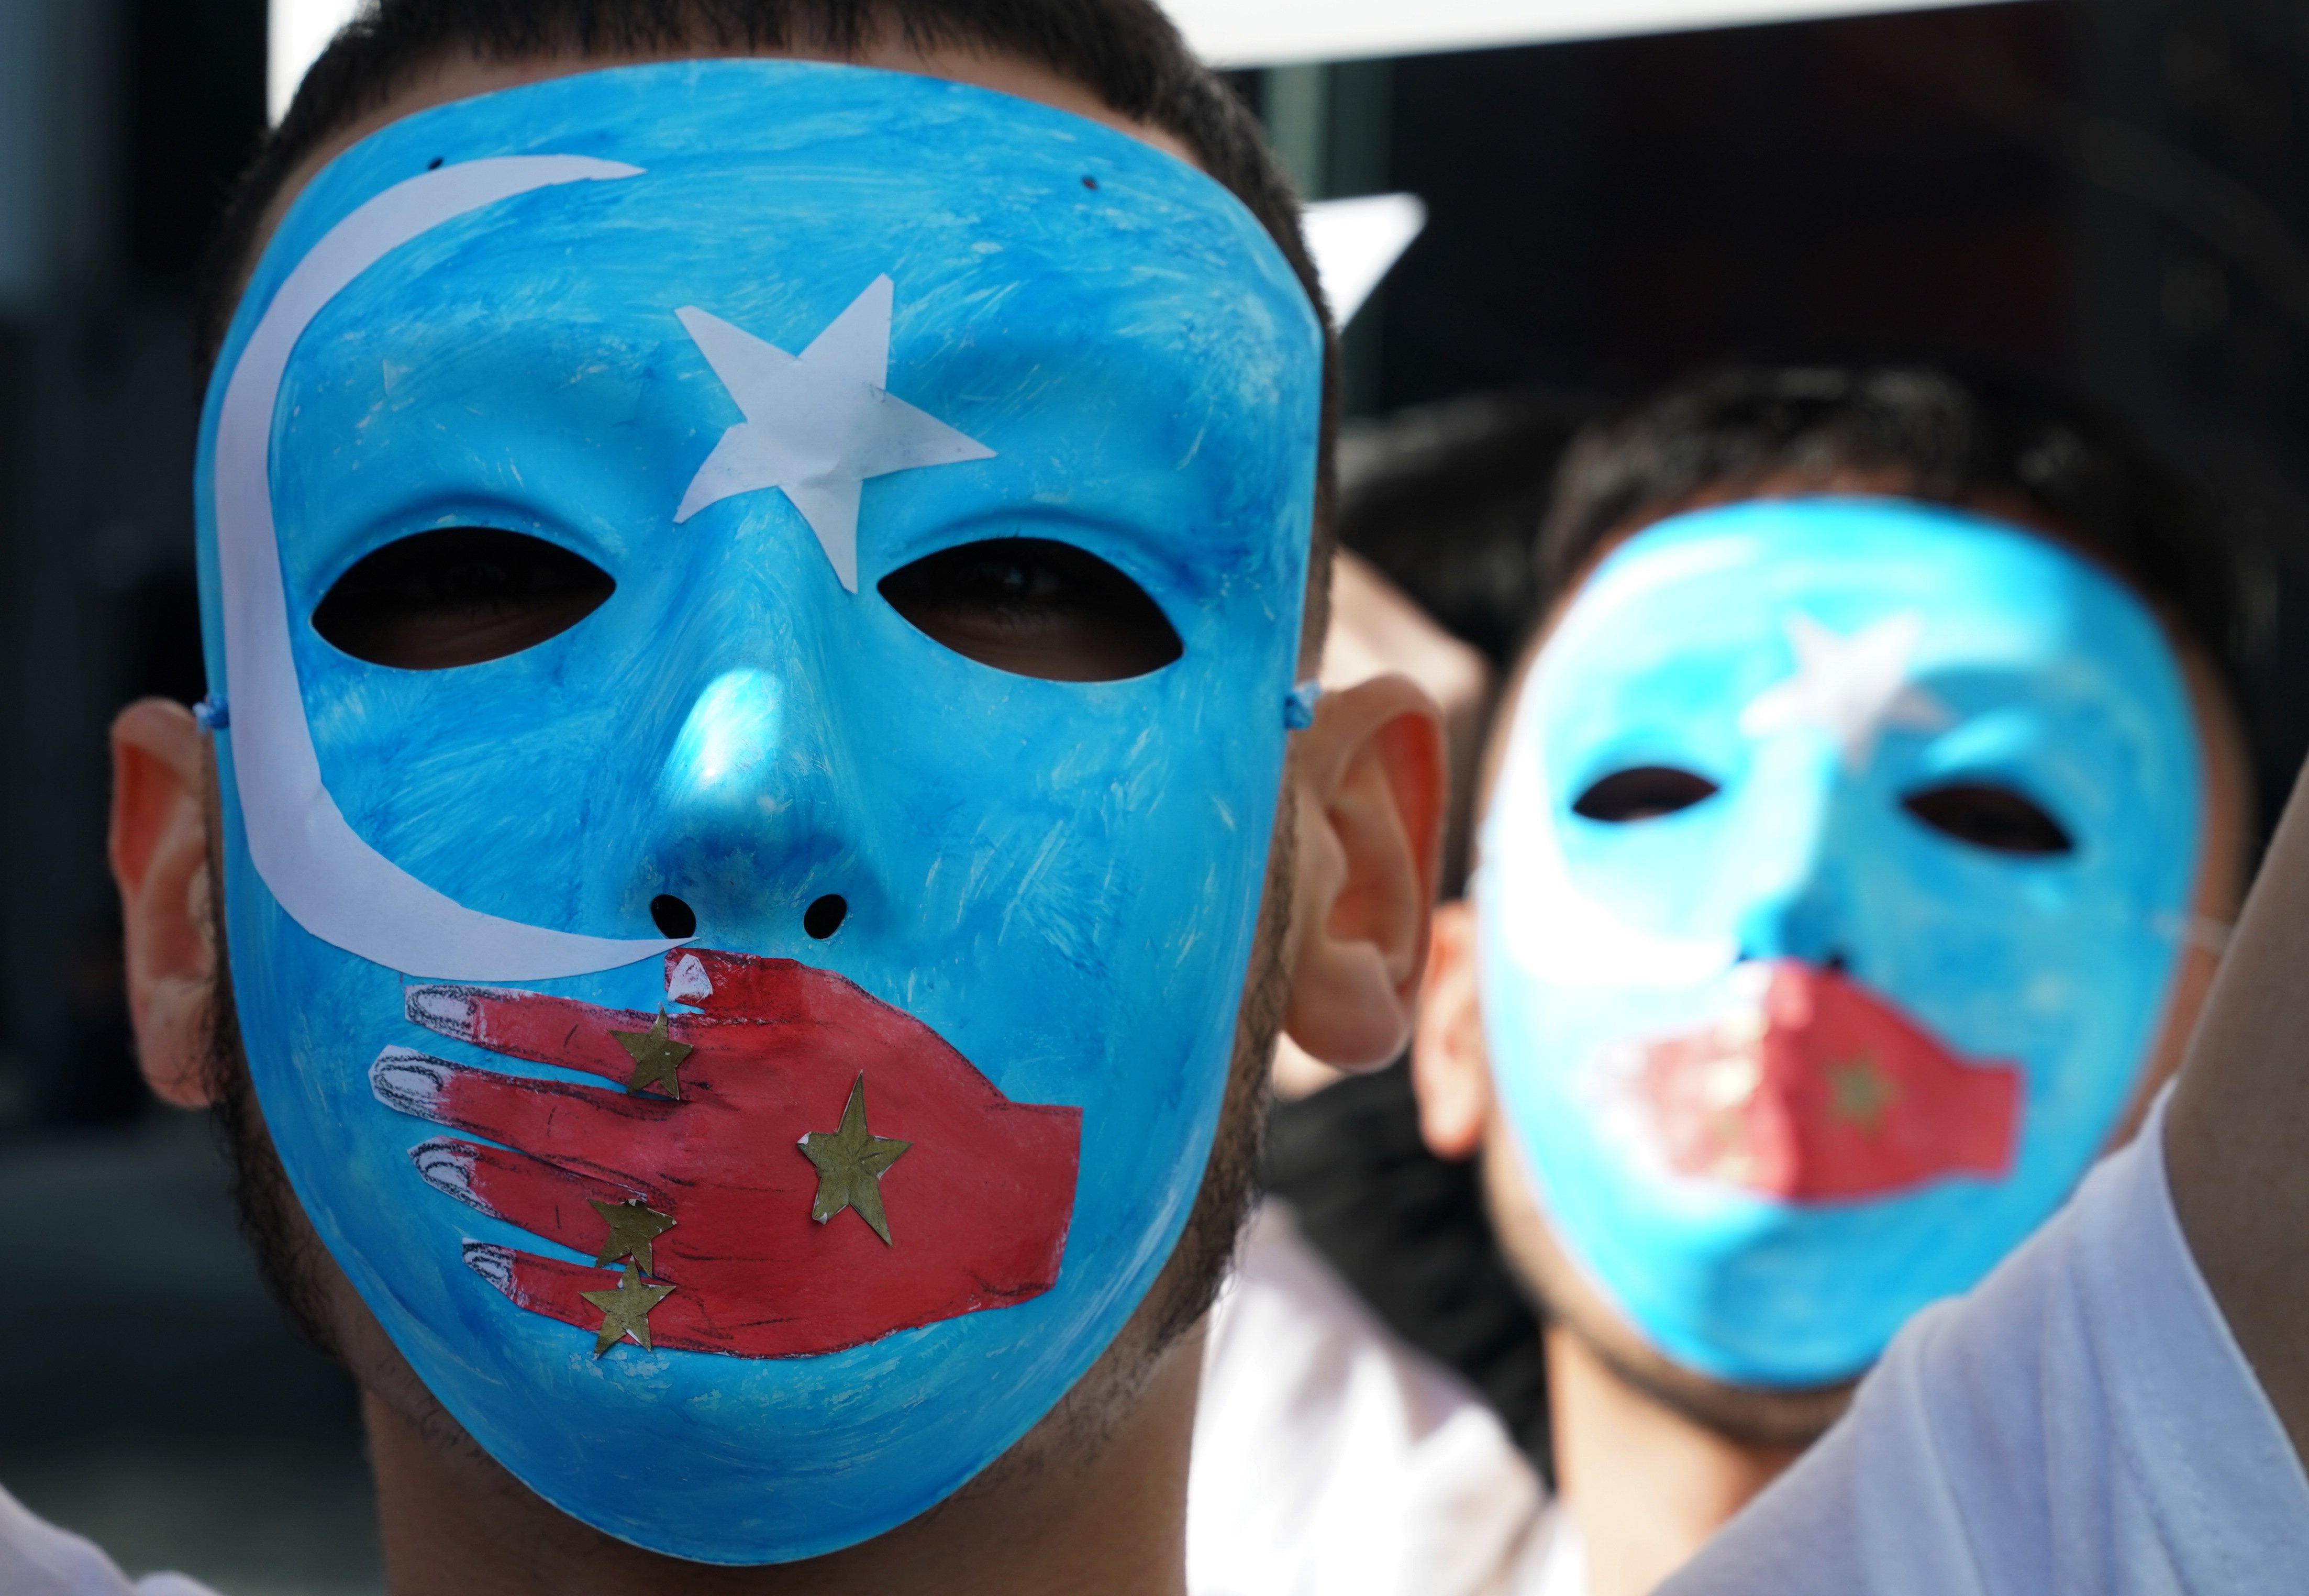 TOPSHOT - People protest at a Uyghur rally on February 5, 2019 in front of the US Mission to the United Nations, to encourage the State Department to fight for the freedom of the majority-Muslim Uighur population unjustly imprisoned in Chinese concentration camps. (TIMOTHY A. CLARY/AFP/Getty Images)